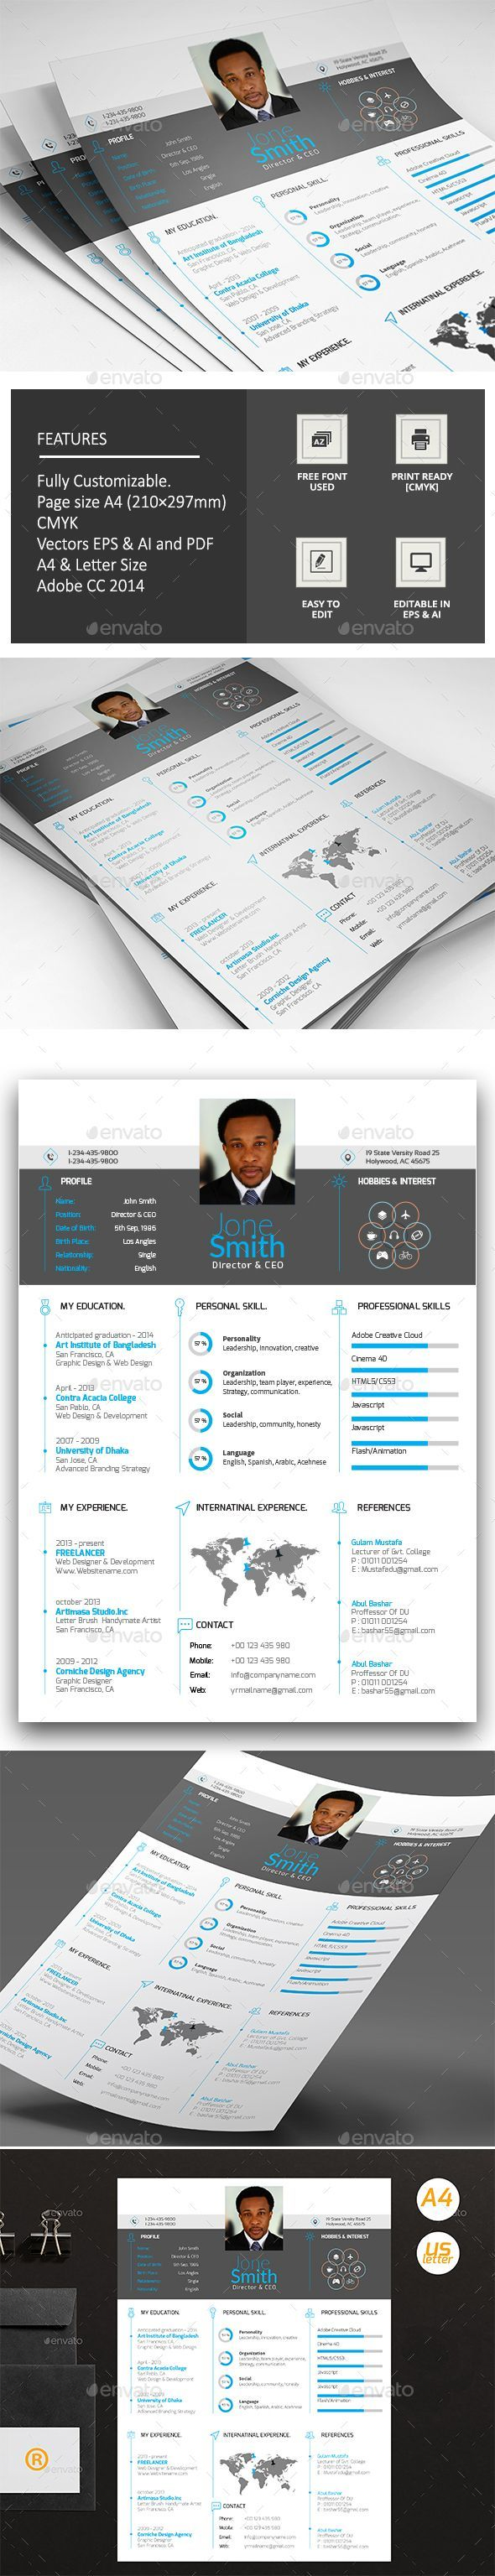 Resume Structure Download - Picture Ideas References